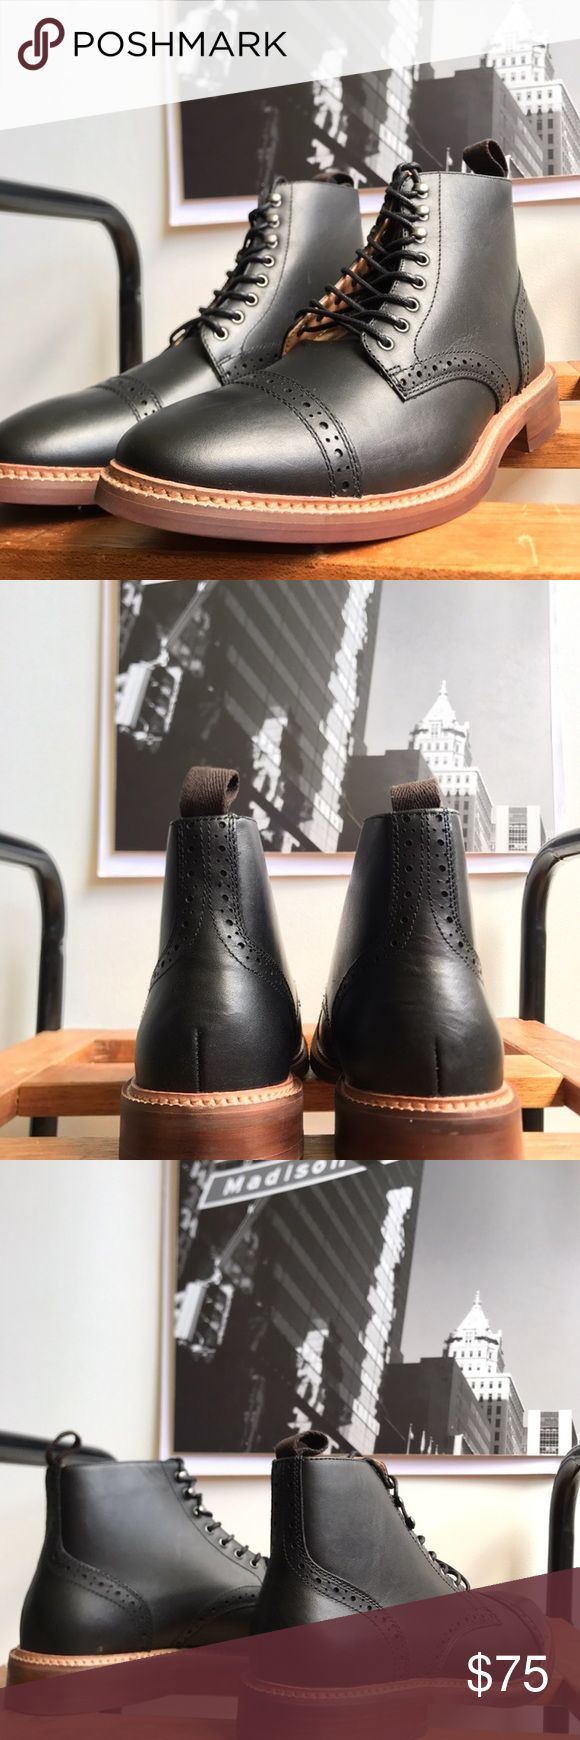 🙌🏾Brand New Aldo Boots #0196AO Brand new Aldo black genuine leather lace up oxford style boot. Notice the detail around the toe area and sides. Pull tab on the back of boot to assist with putting on boots. NO TRADES. NO LOWBALL OFFERS, Thank you! #boot #aldo #men #mensstyle #style #streetwear #boot #size7.5 #size37.5 #oxford #fallfashion #winterfashion #winter #fall #blackboot #black #aldoboot Aldo Shoes Boots